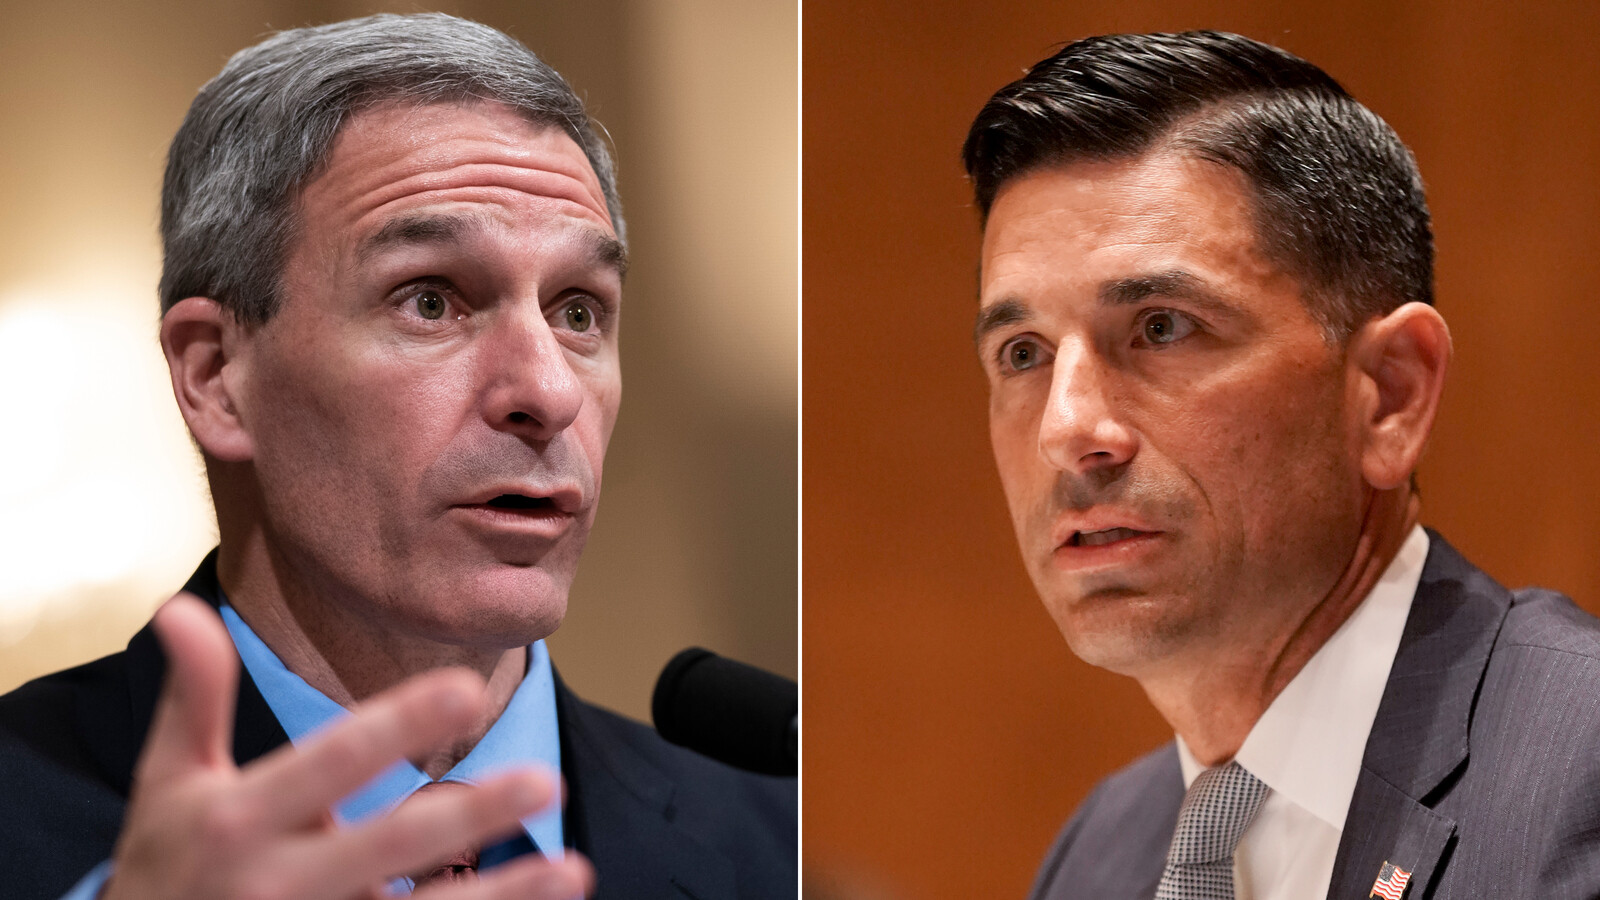 Former top DHS officials Chad Wolf and Ken Cuccinelli are asked to speak with House committee investigating January 6